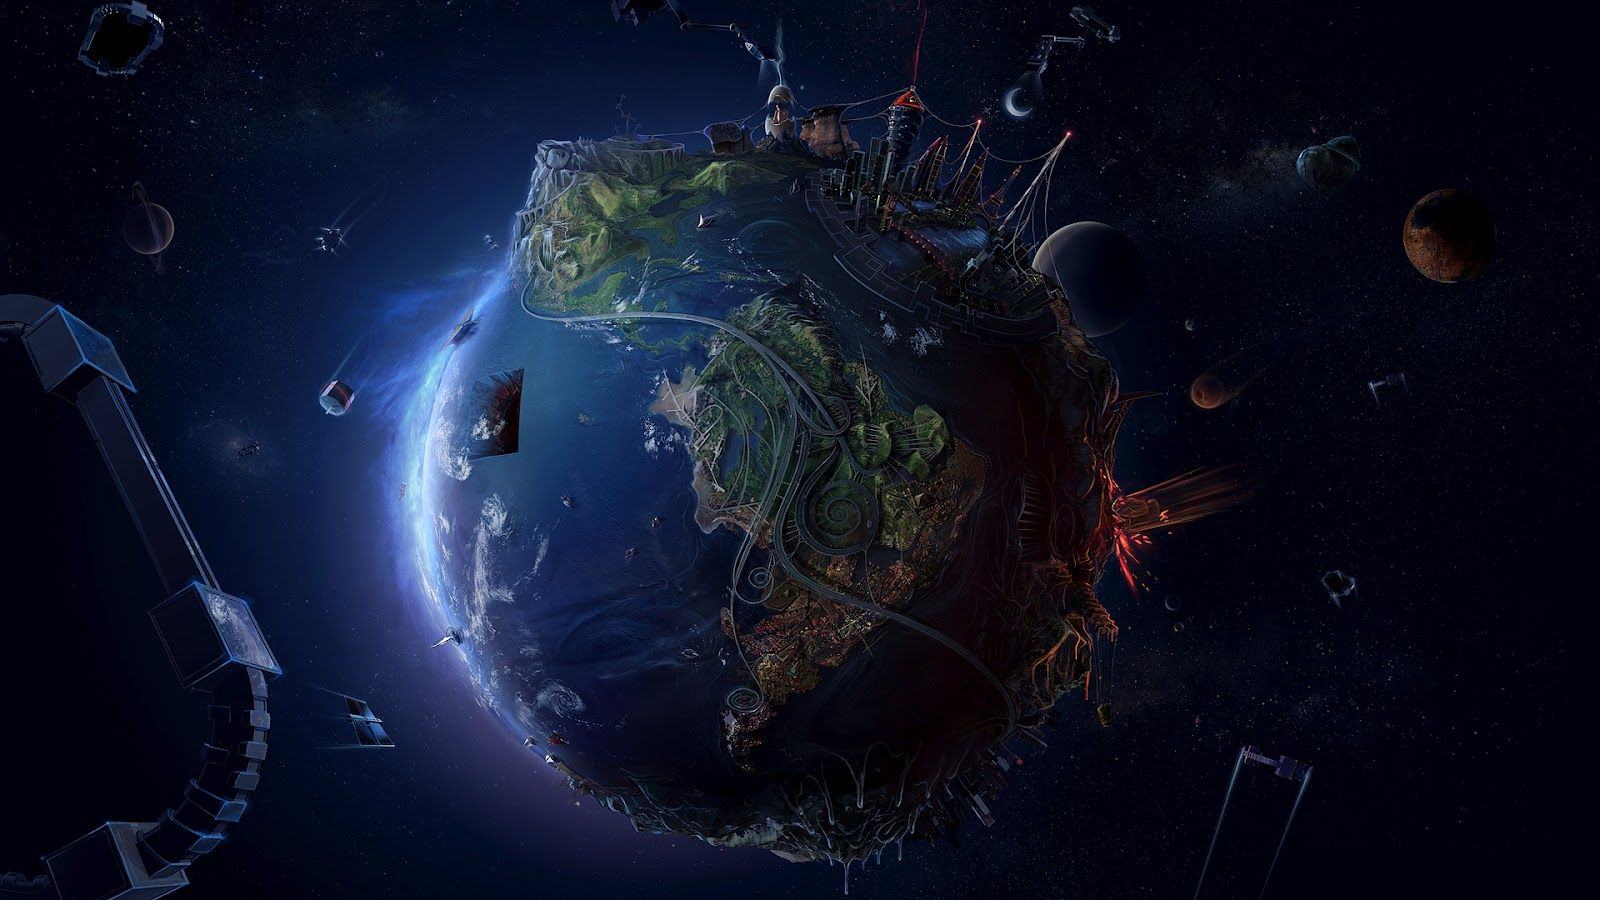 Animated Globe HD Wallpaper Space HD Wallpaper 3D Space HQ